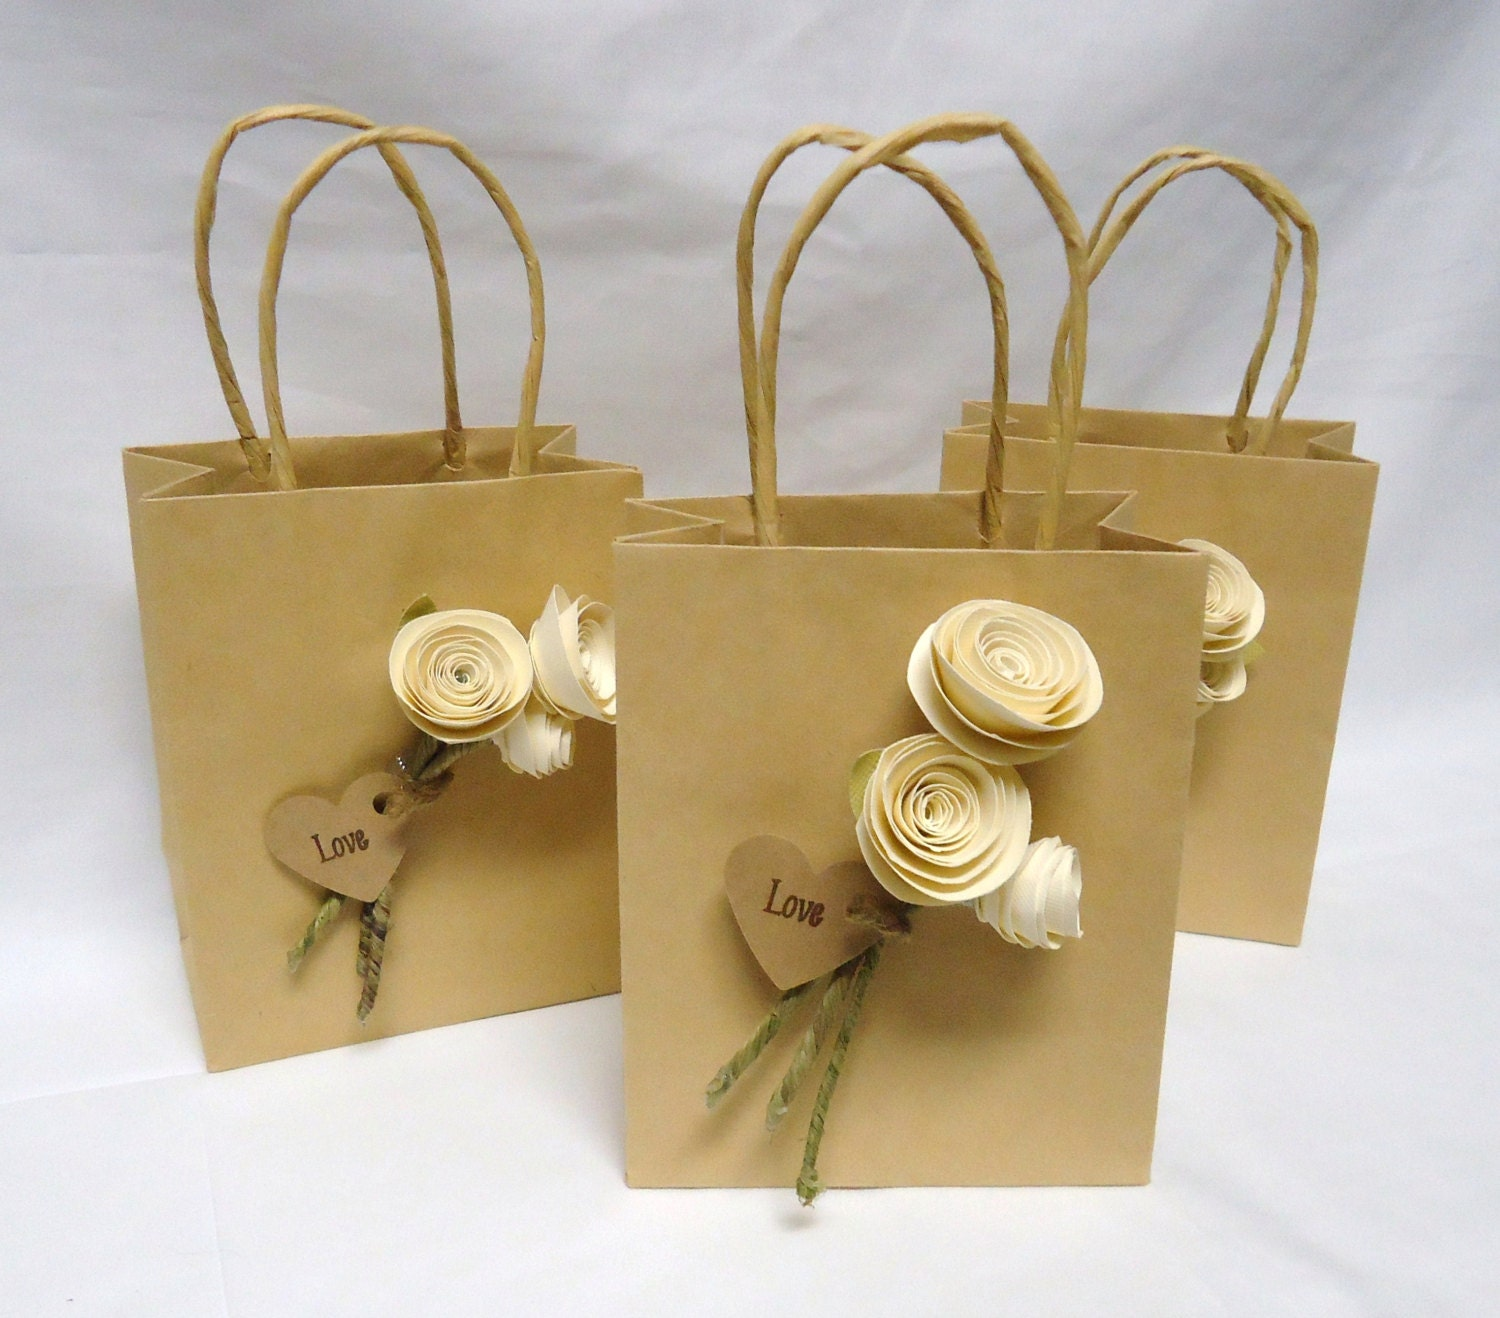 Wedding Favor Bag Ideas : Wedding favor bags. wedding gift bags. gift bags. Paper rose wedding ...